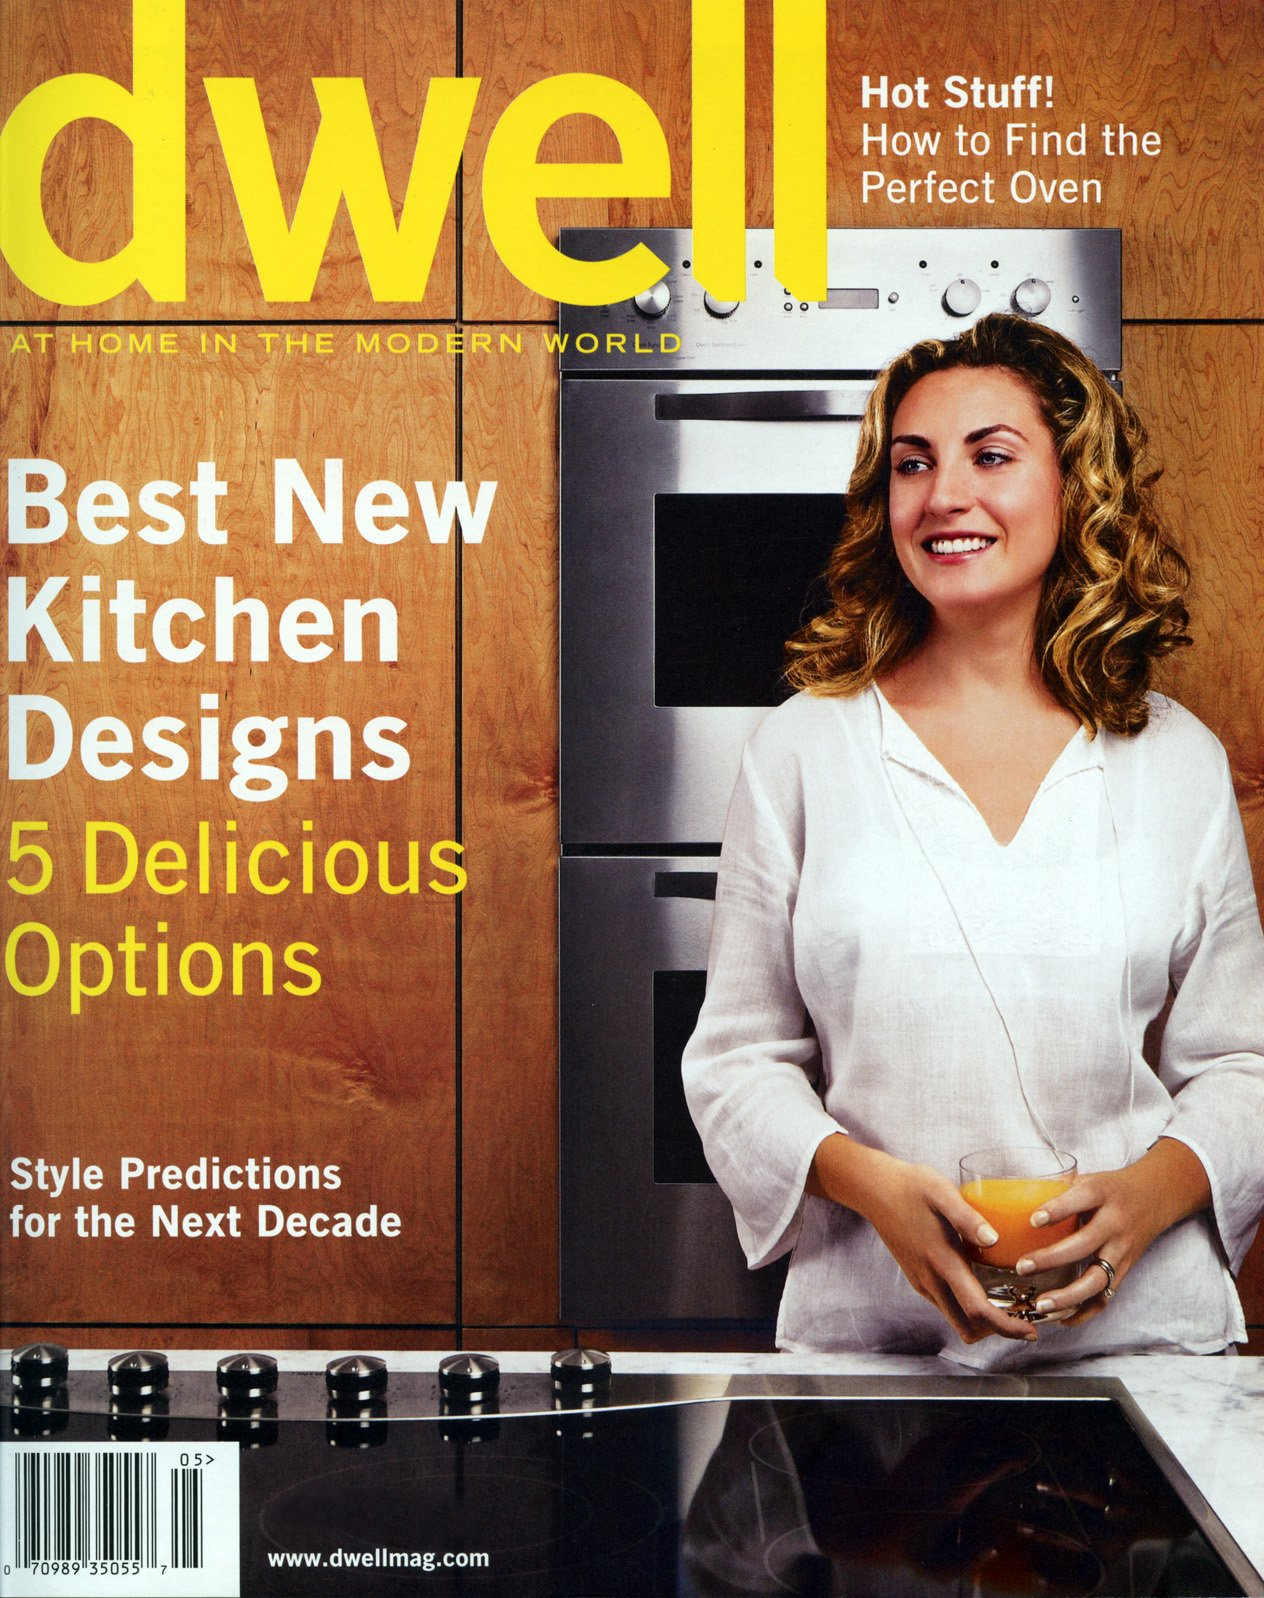 Dwell April/May 2004, Vol. 04 Issue 05: Best New Kitchen Designs by Dwell